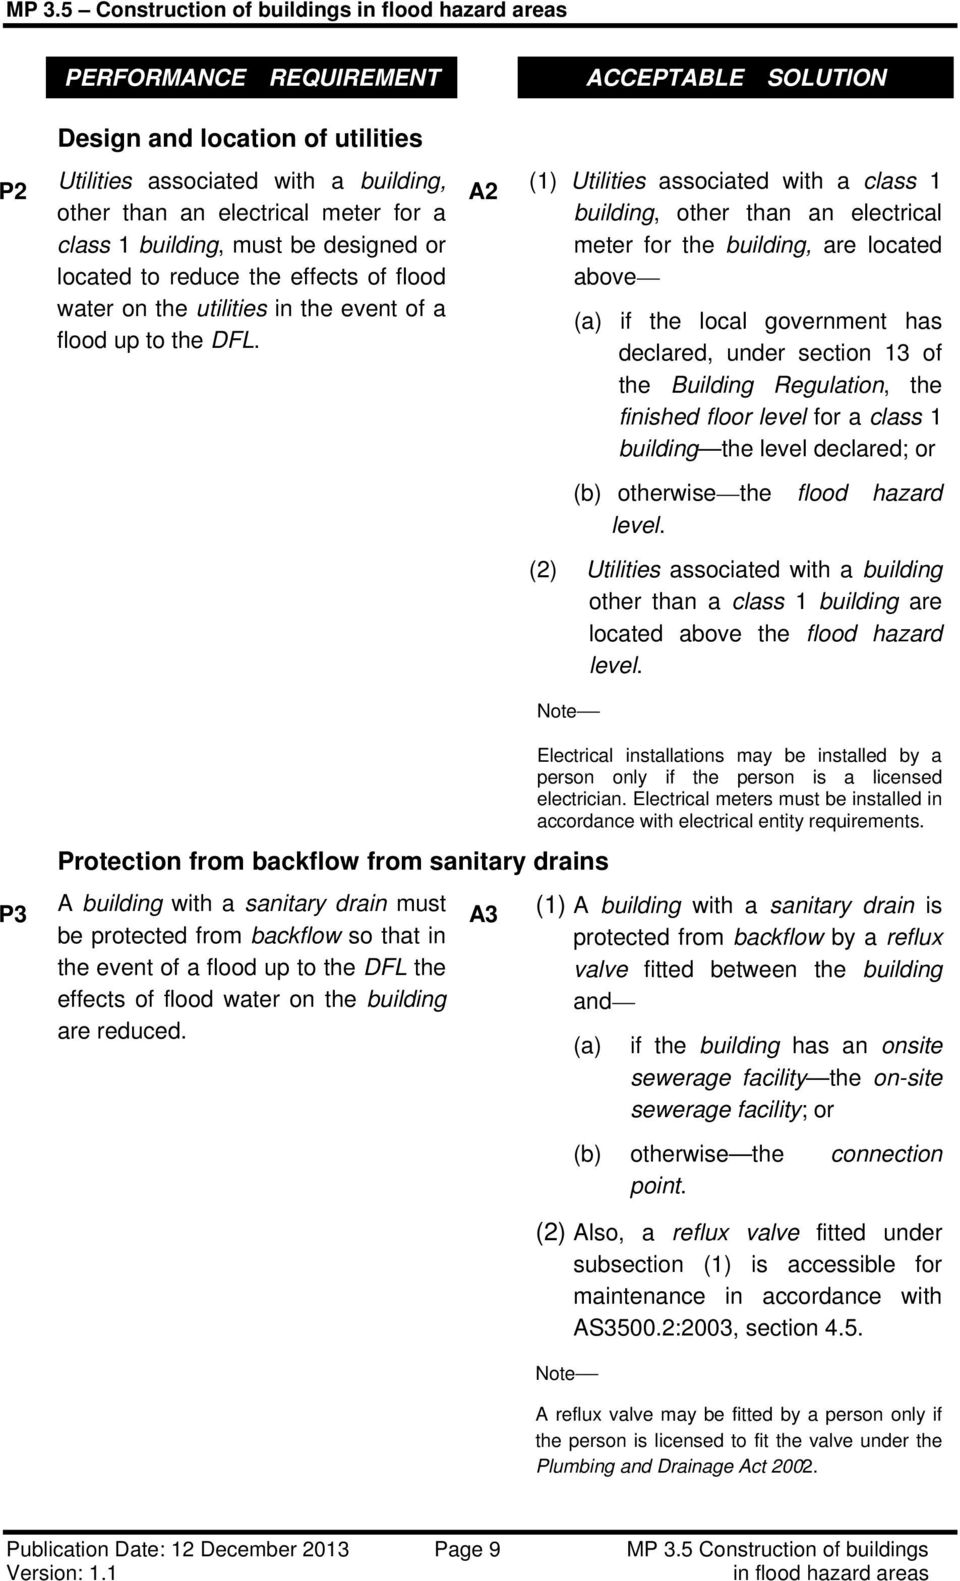 A2 (1) Utilities associated with a class 1 building, other than an electrical meter for the building, are located above (a) if the local government has declared, under section 13 of the Building